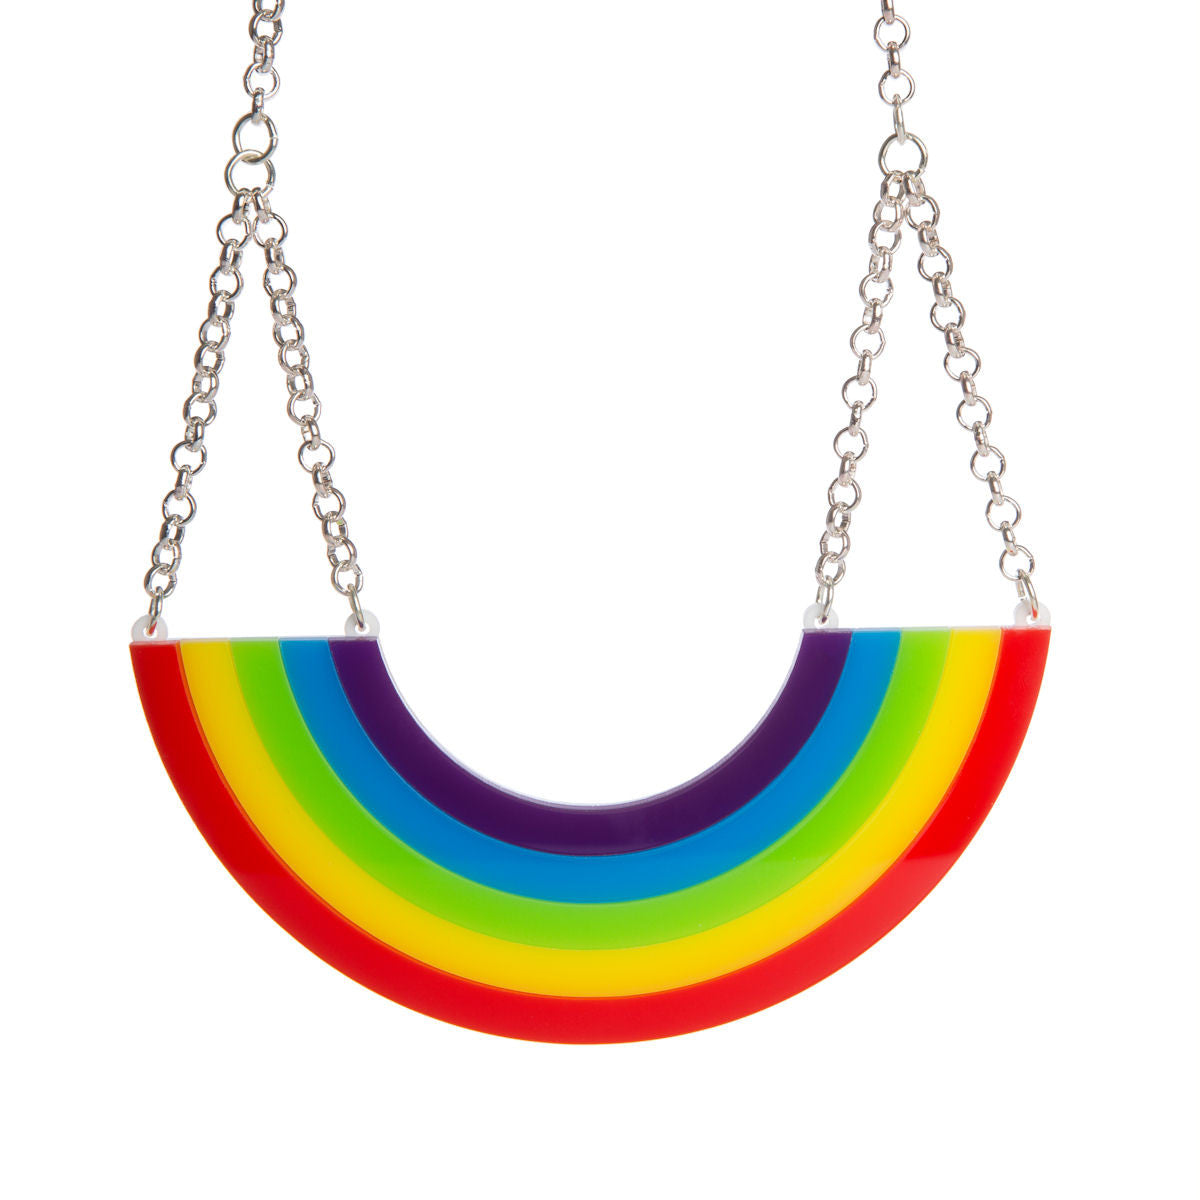 sparklebomb rainbownecklacemini necklace rainbow products mini